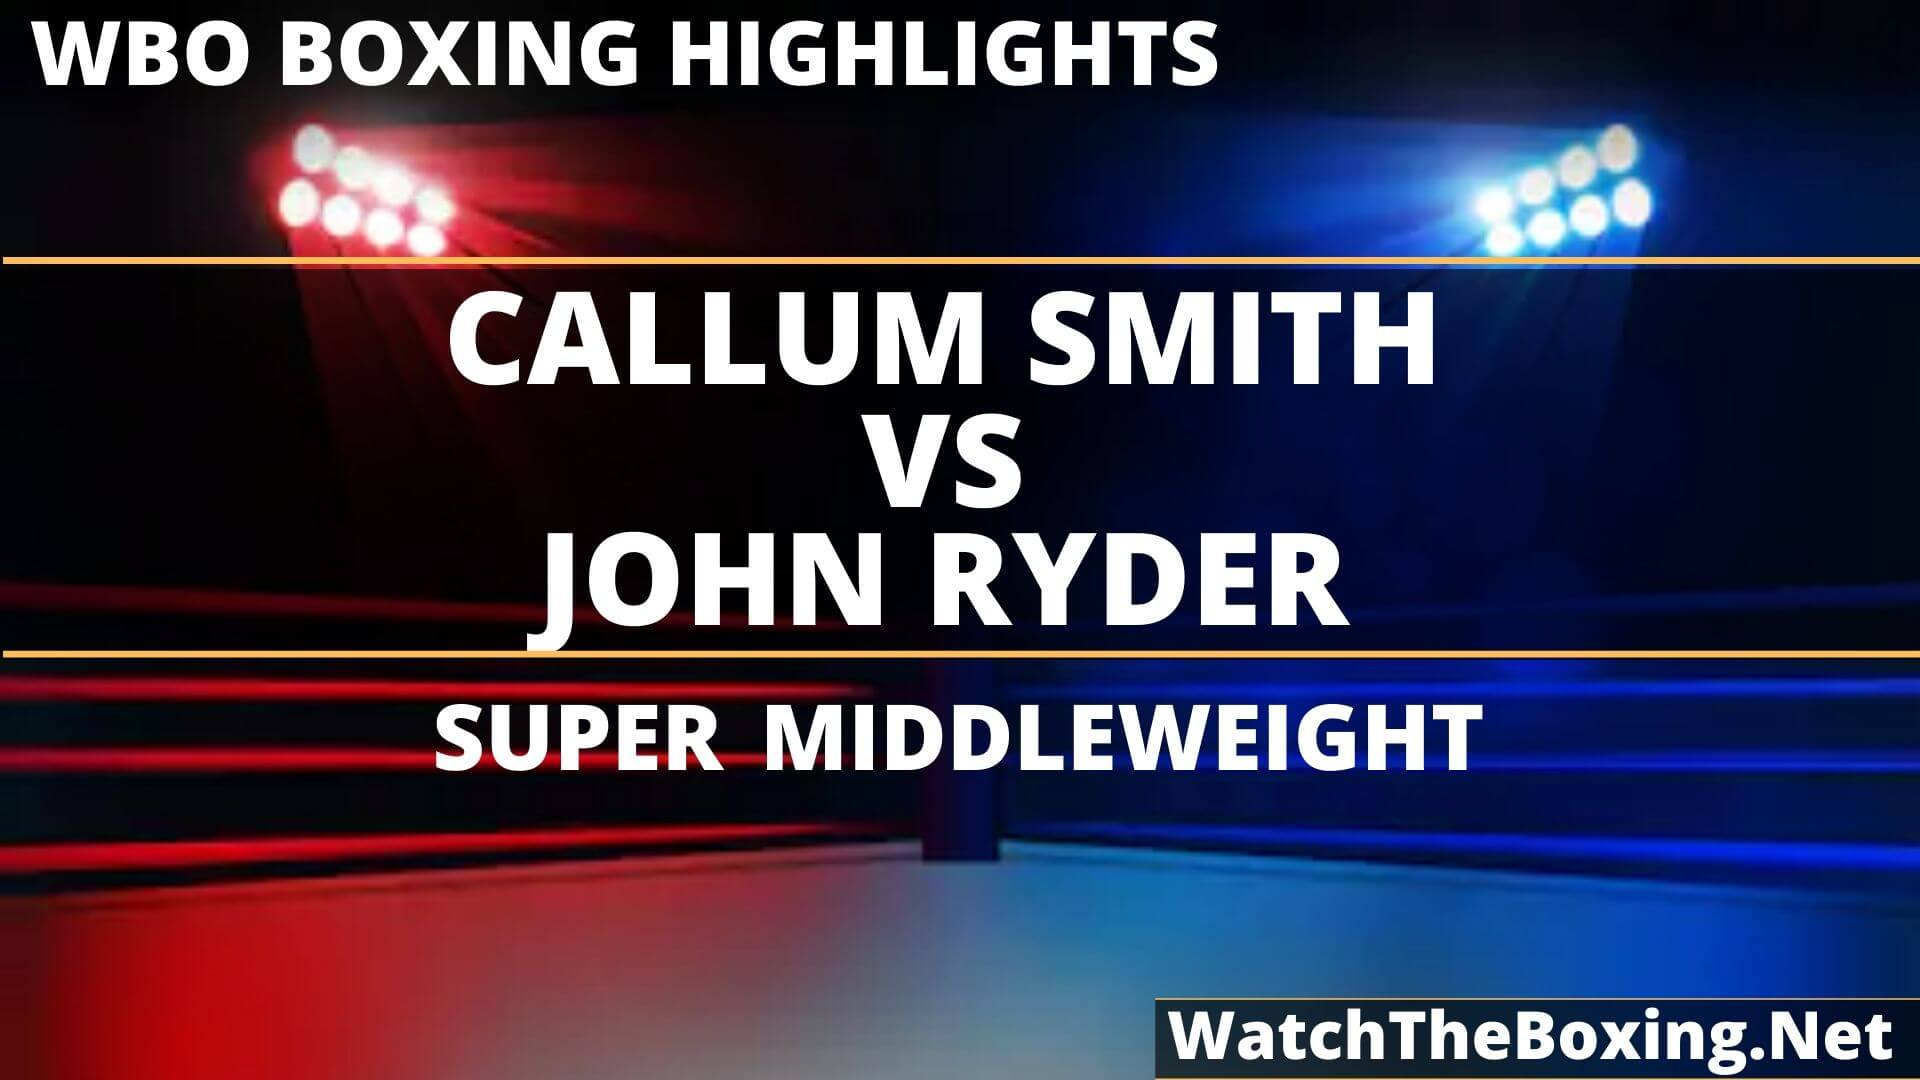 Callum Smith Vs John Ryder Highlights 2019